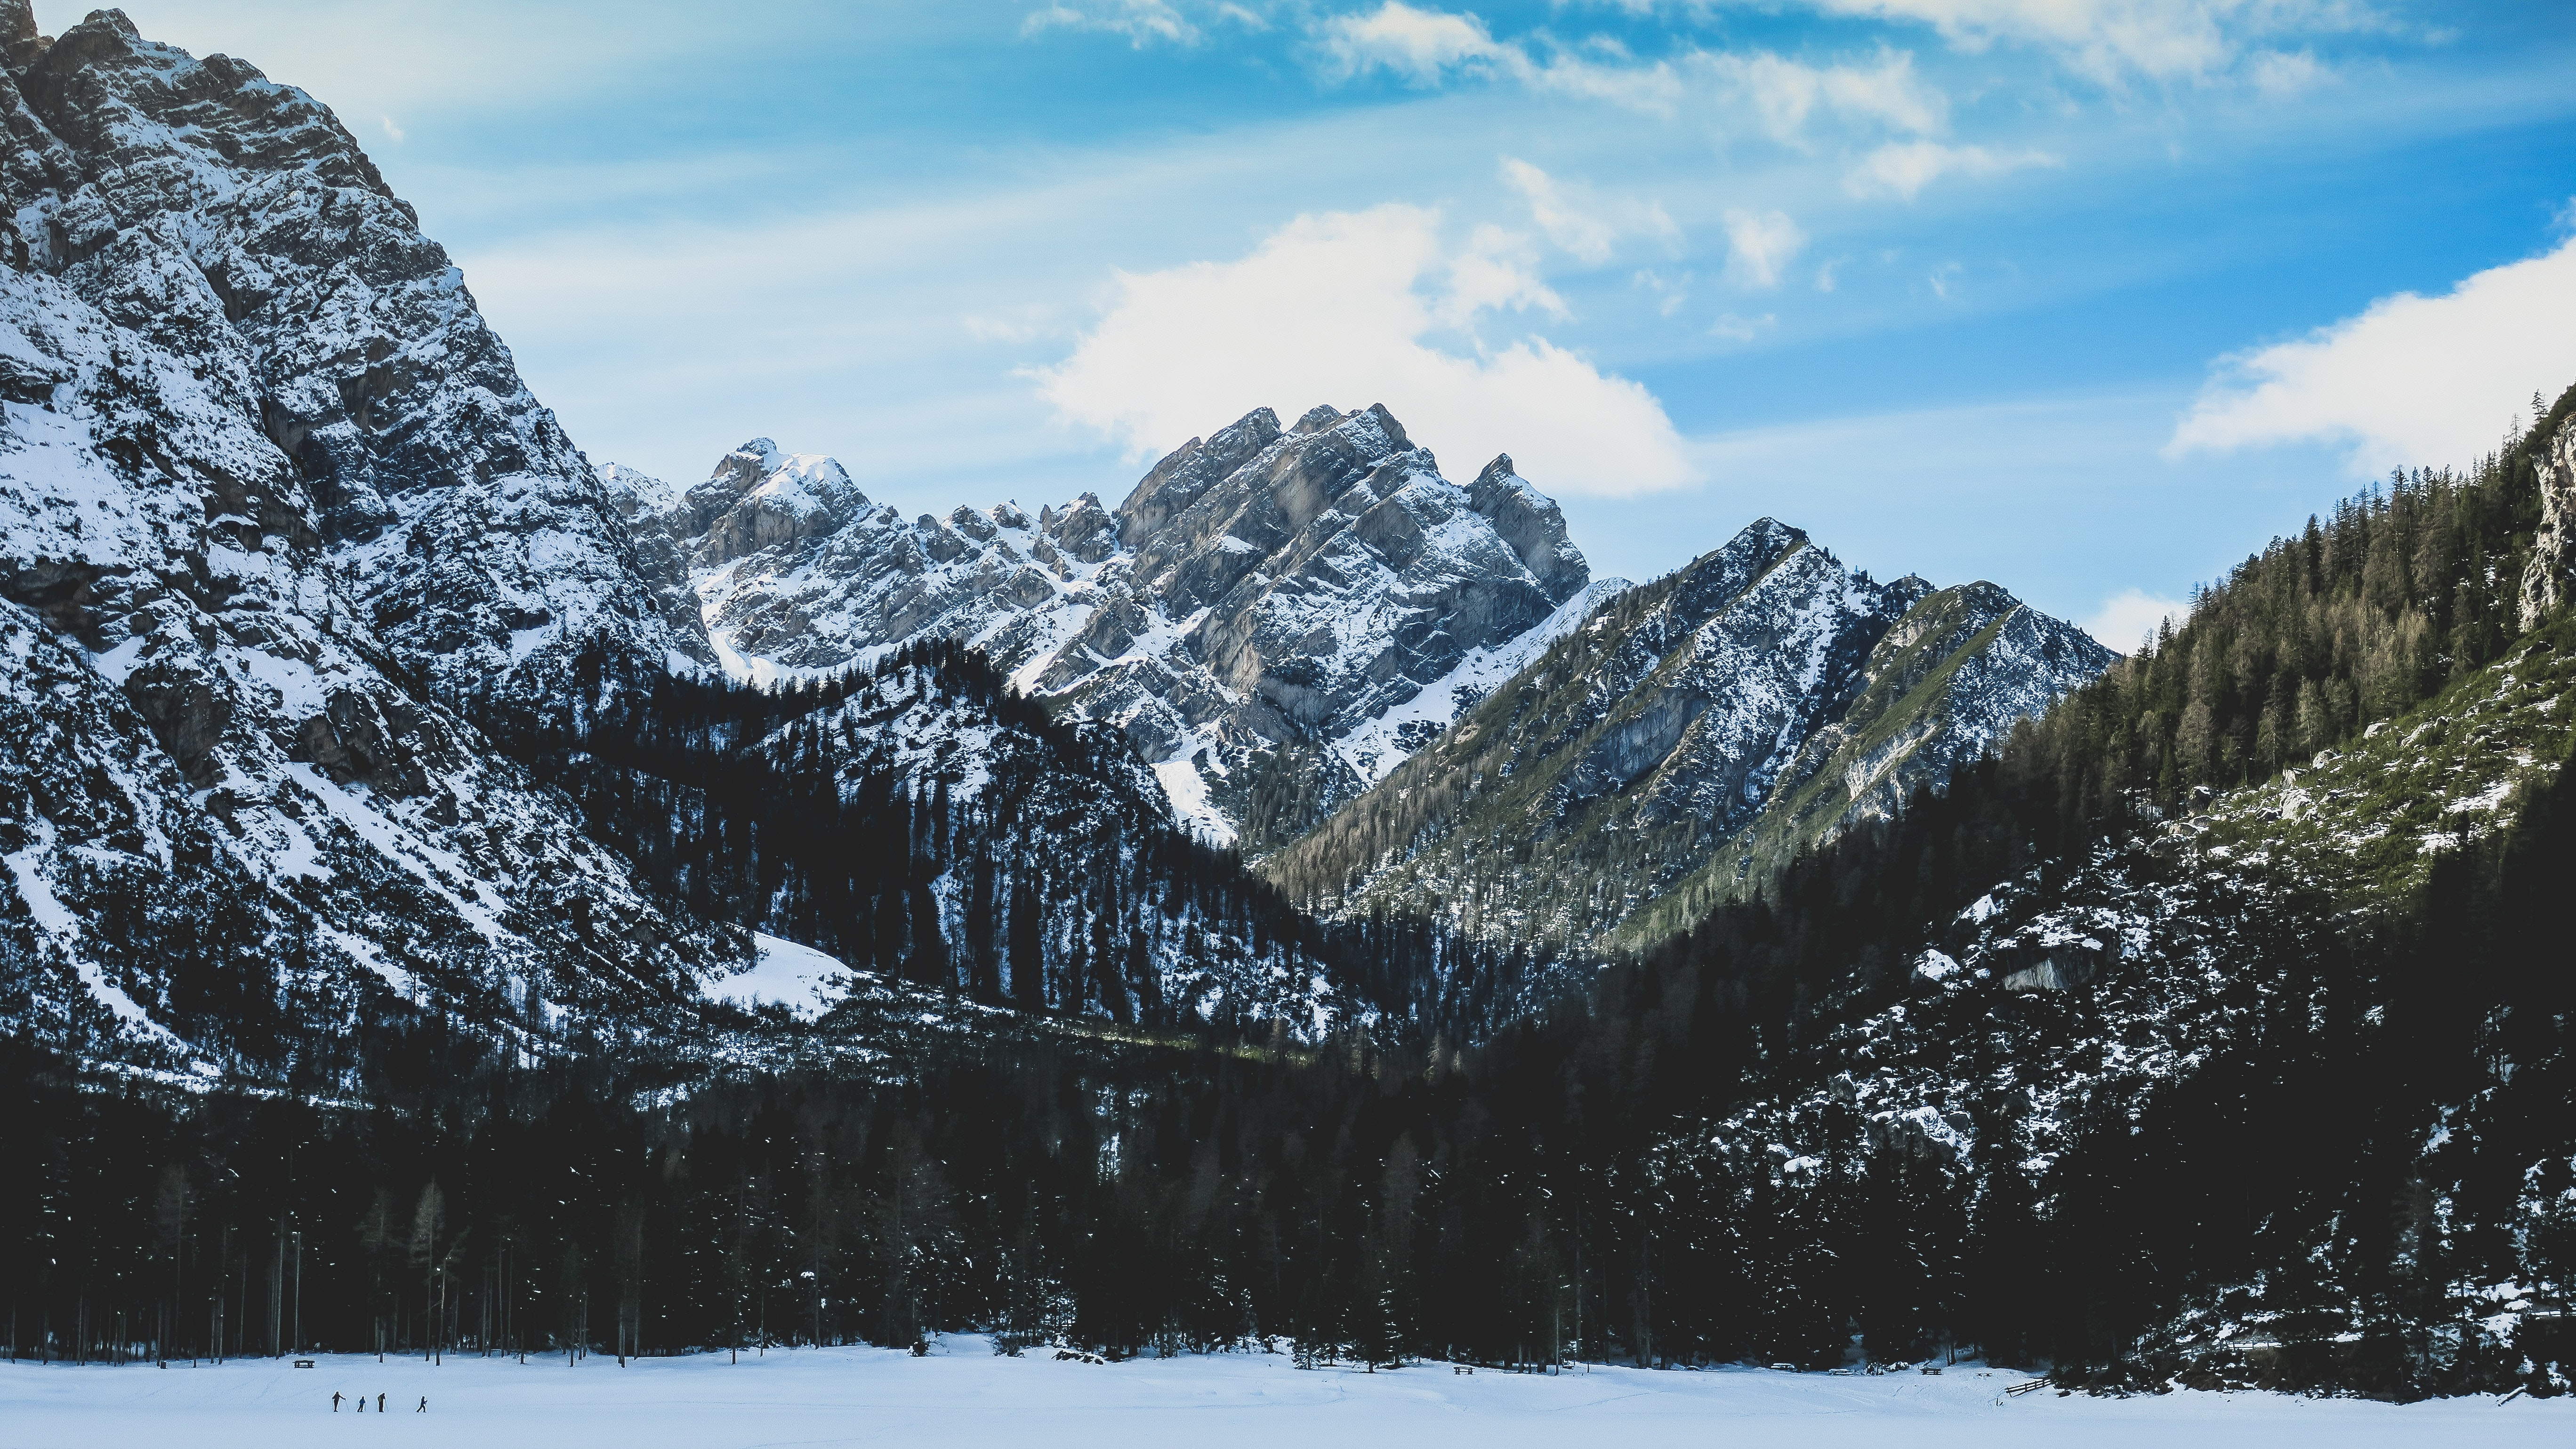 A wintry scenery with craggy mountain crests and wooded slopes near Lago di Braies